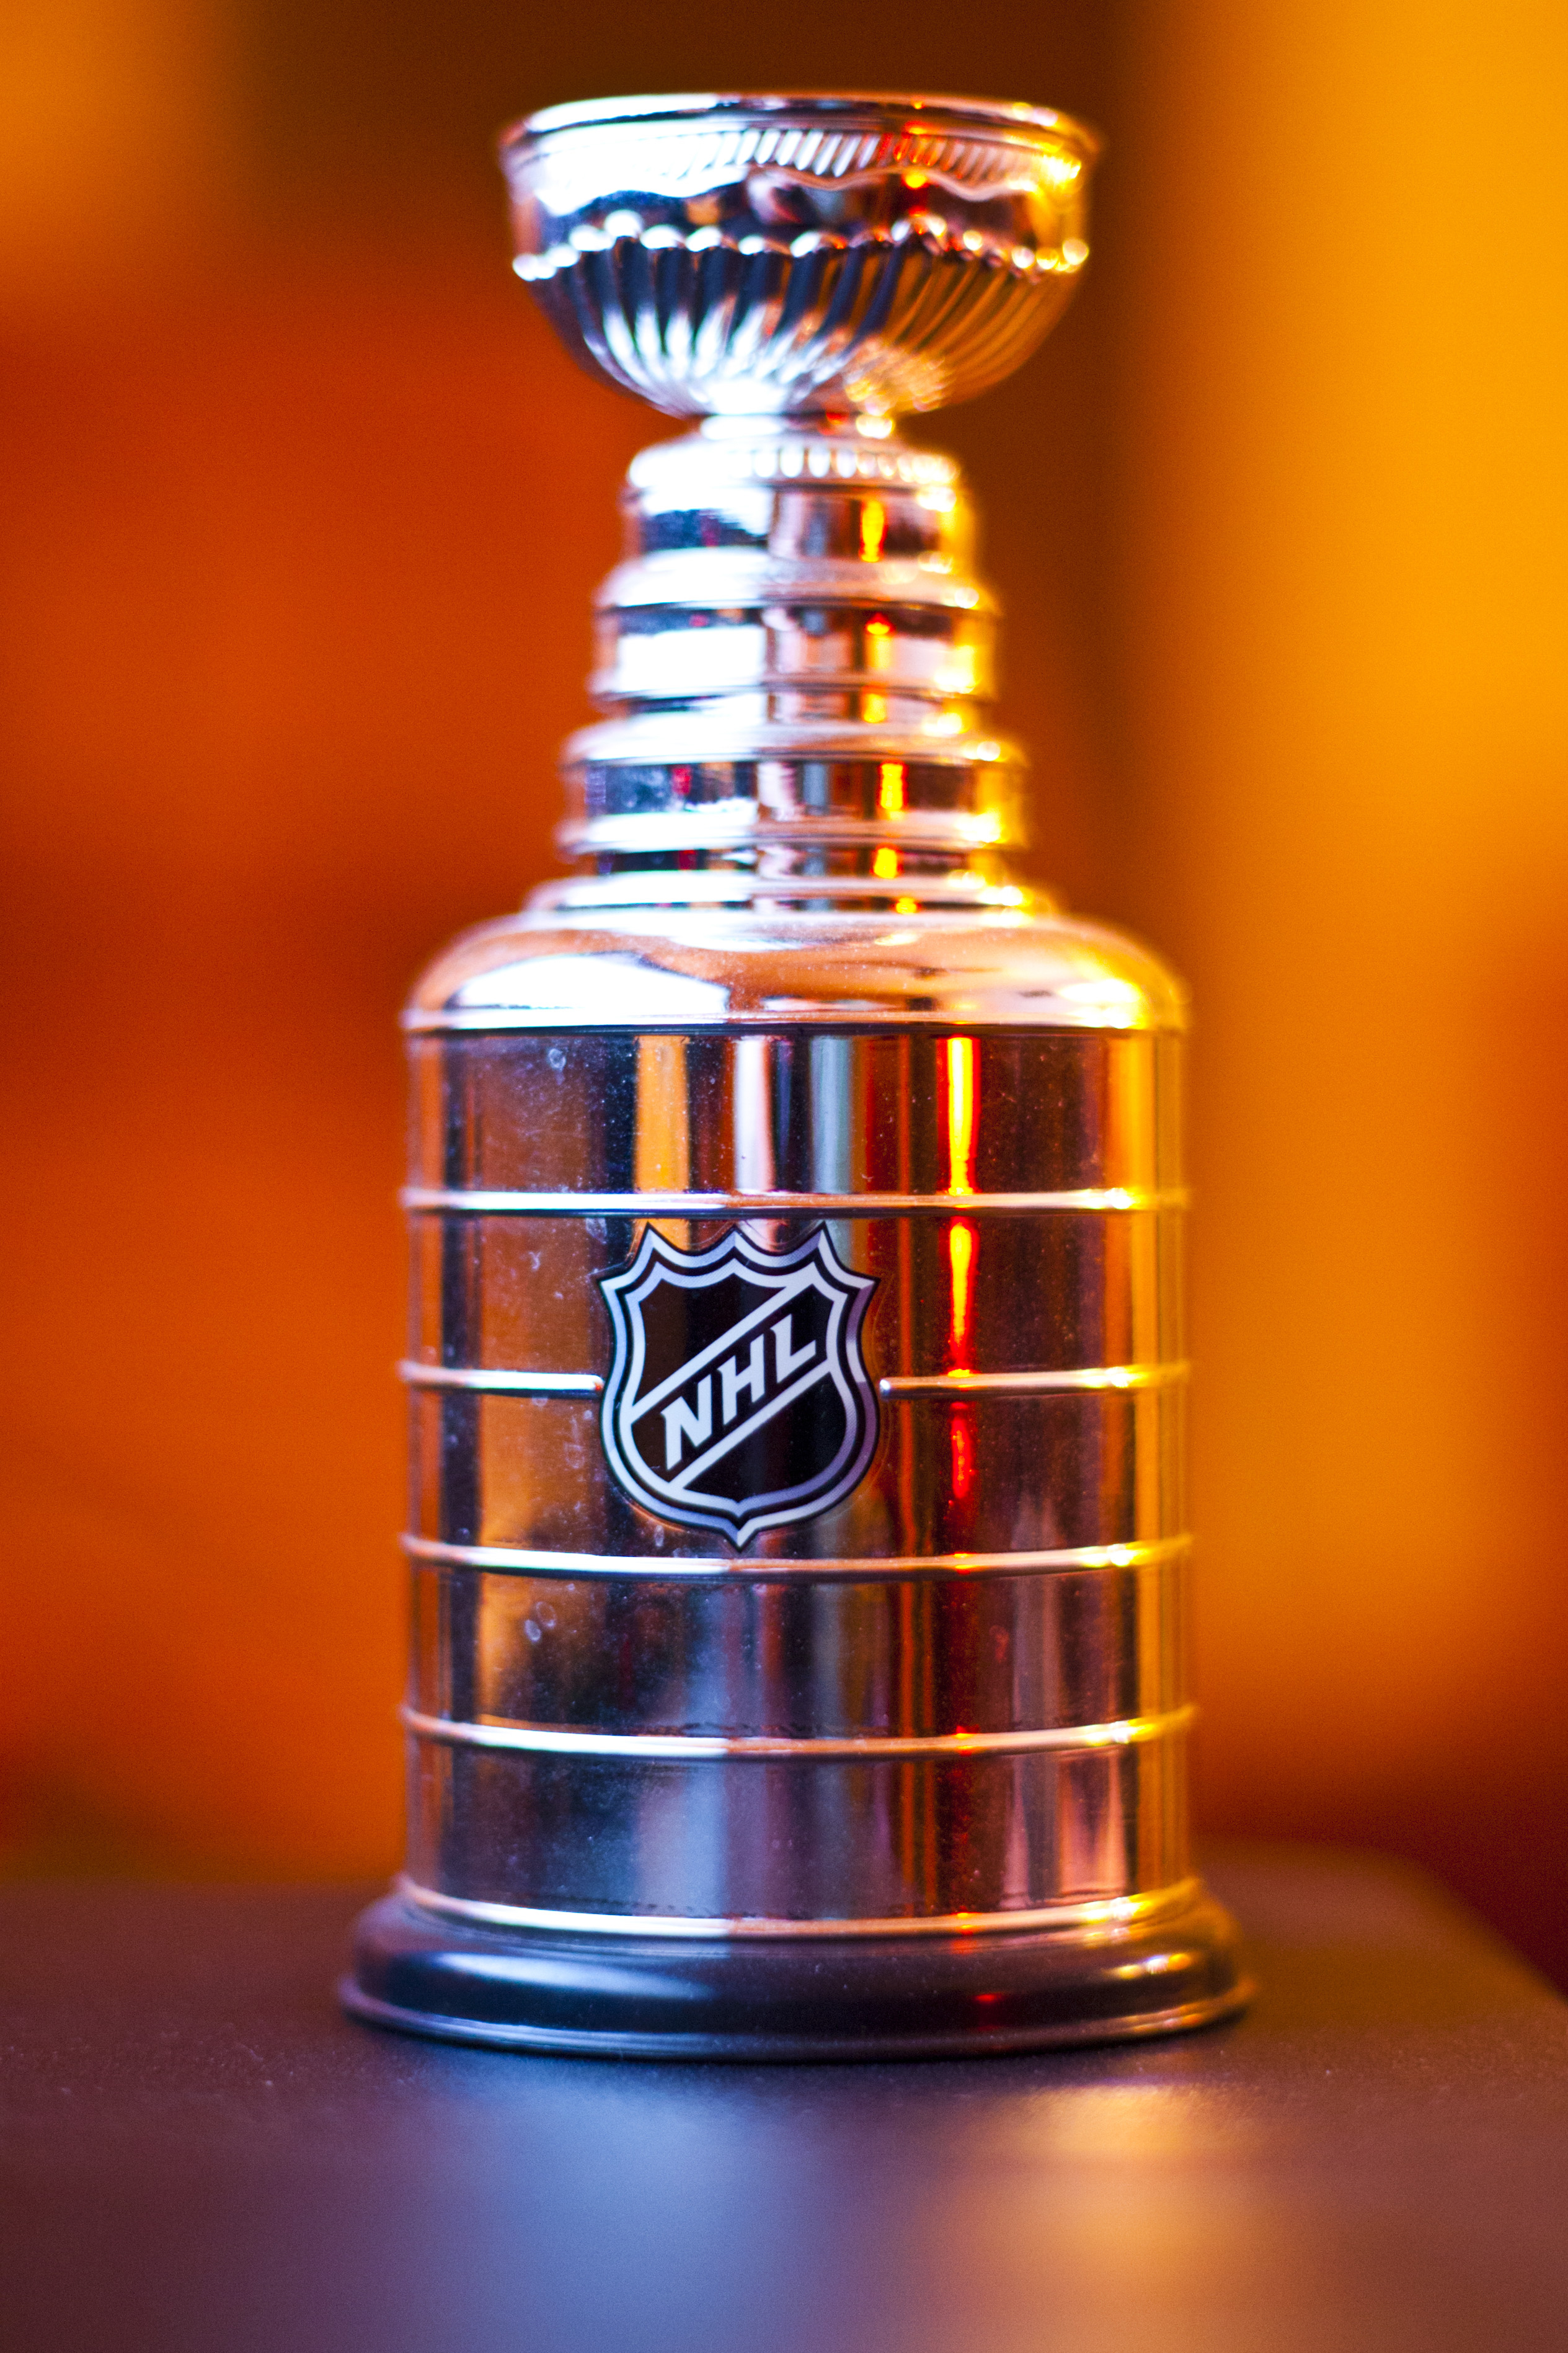 The Stanley Cup sits ready to be engraved for the next NHL champion. (credit: Courtesy of John Davis via Flickr Creative Commons)